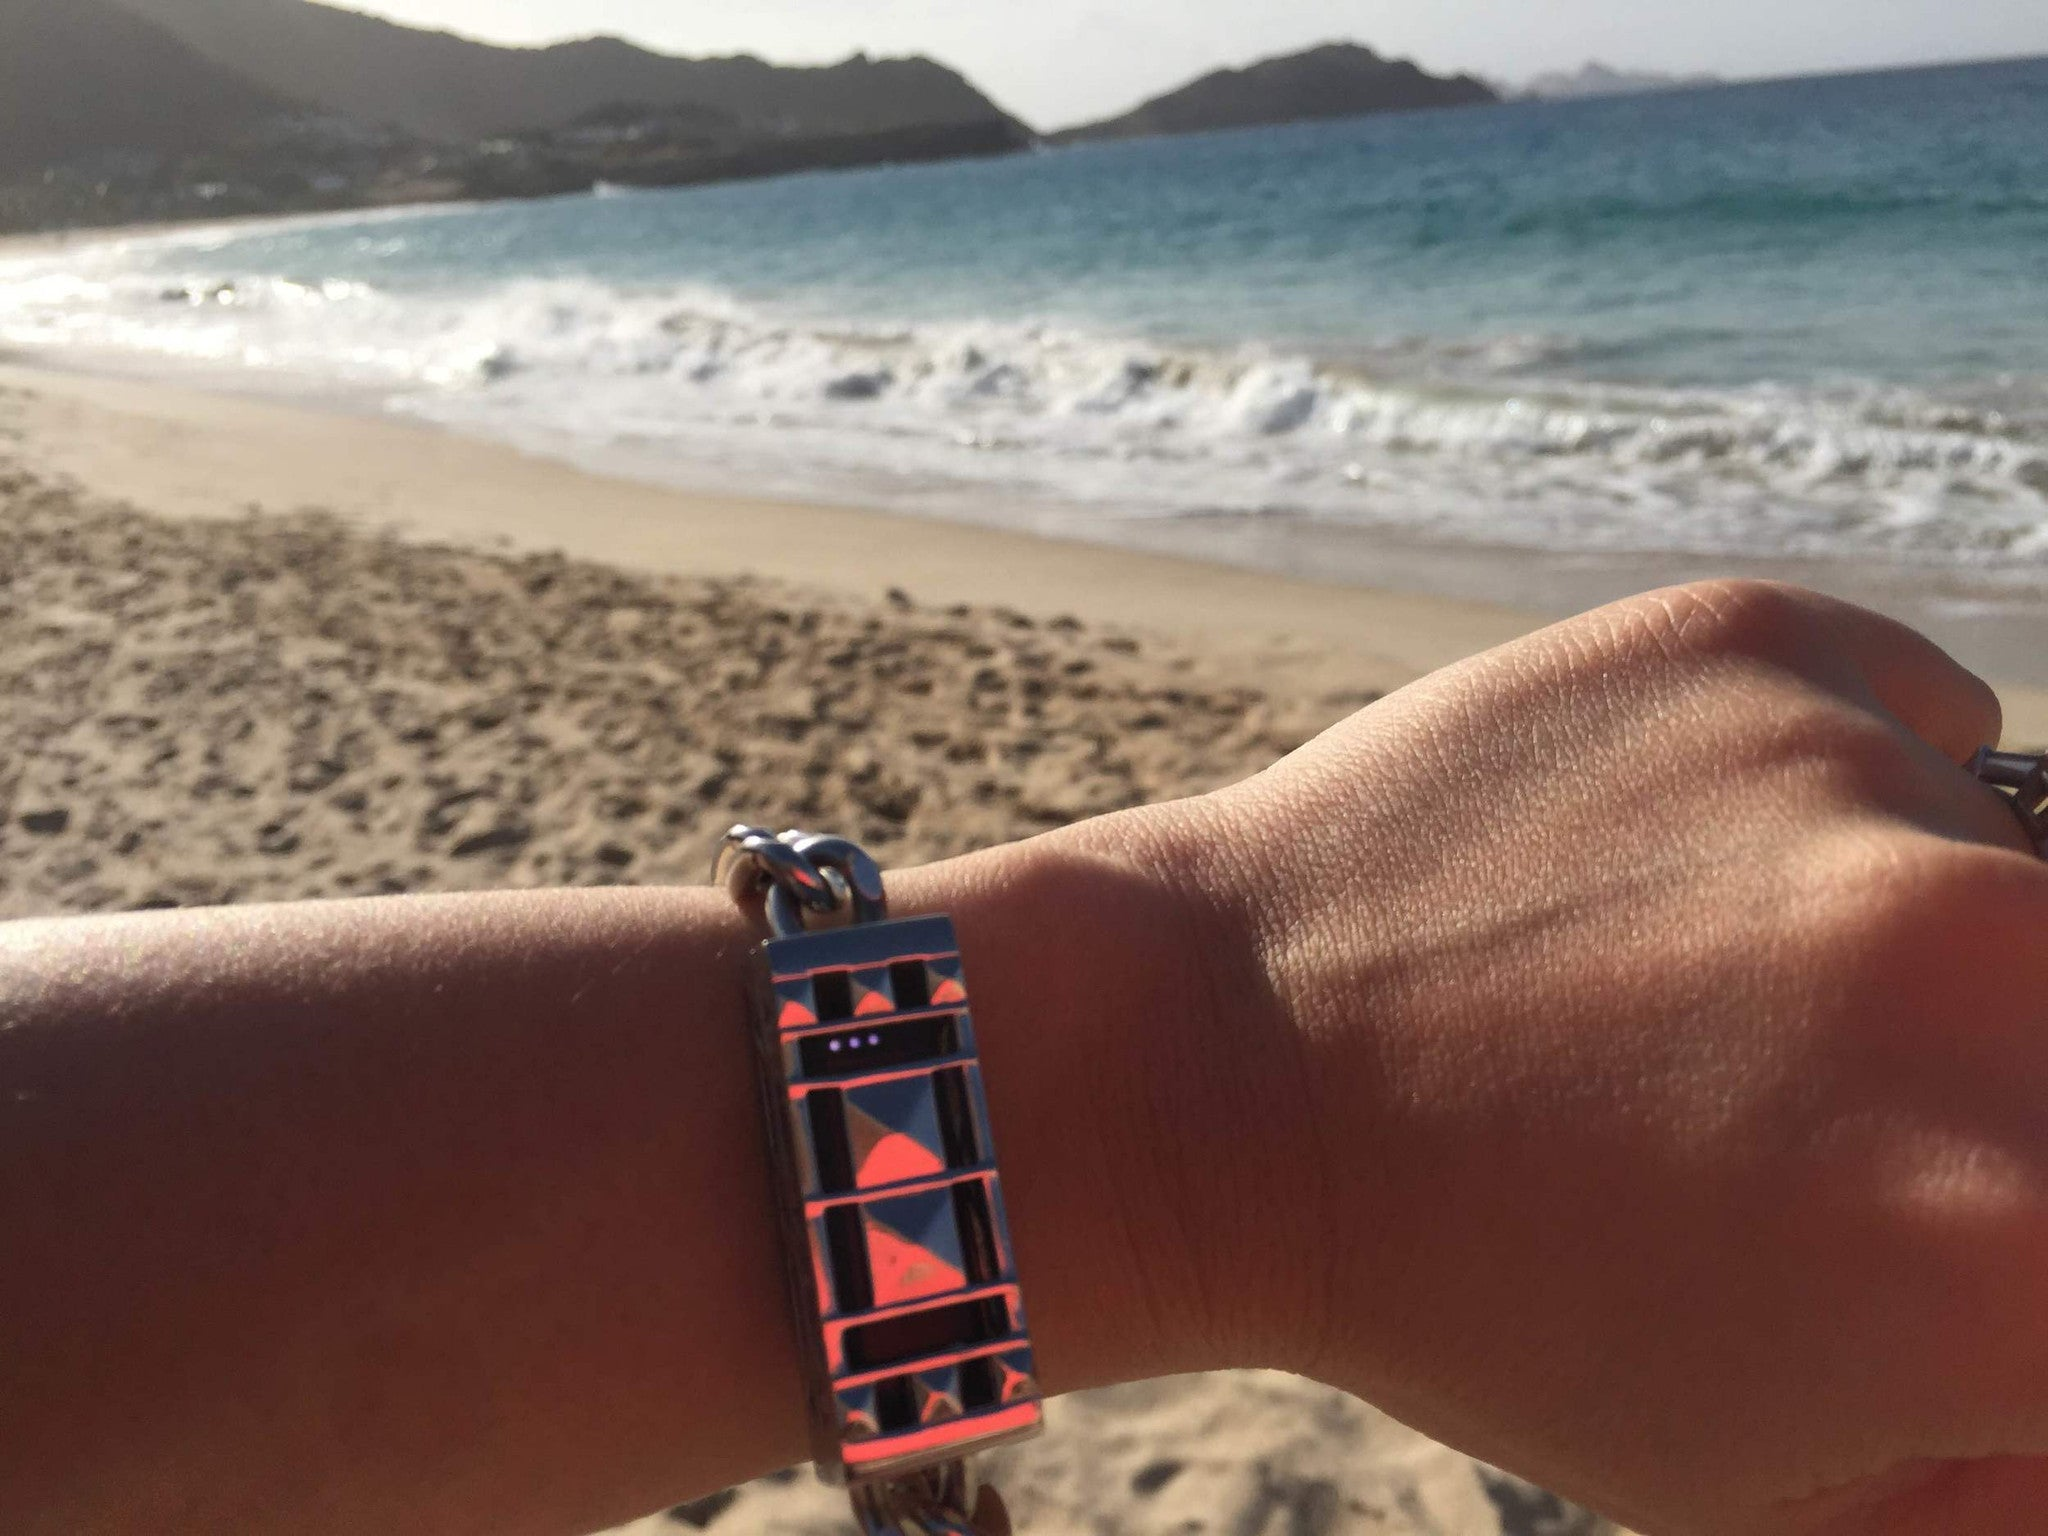 My vacation buddies: Fitbit and Bezels & Bytes